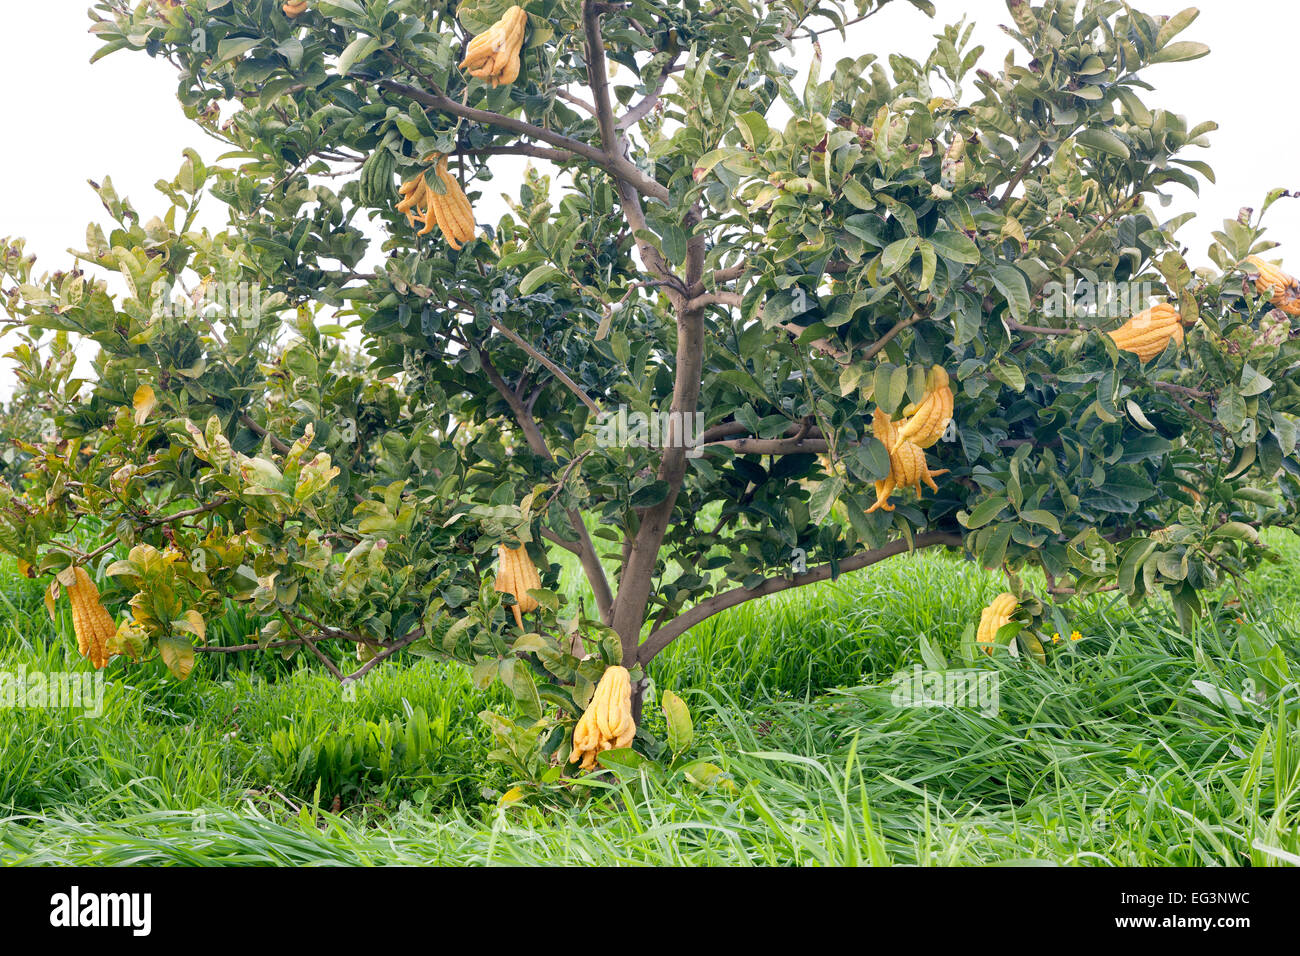 Buddha's Hand, maturing fruit on branches. Stock Photo